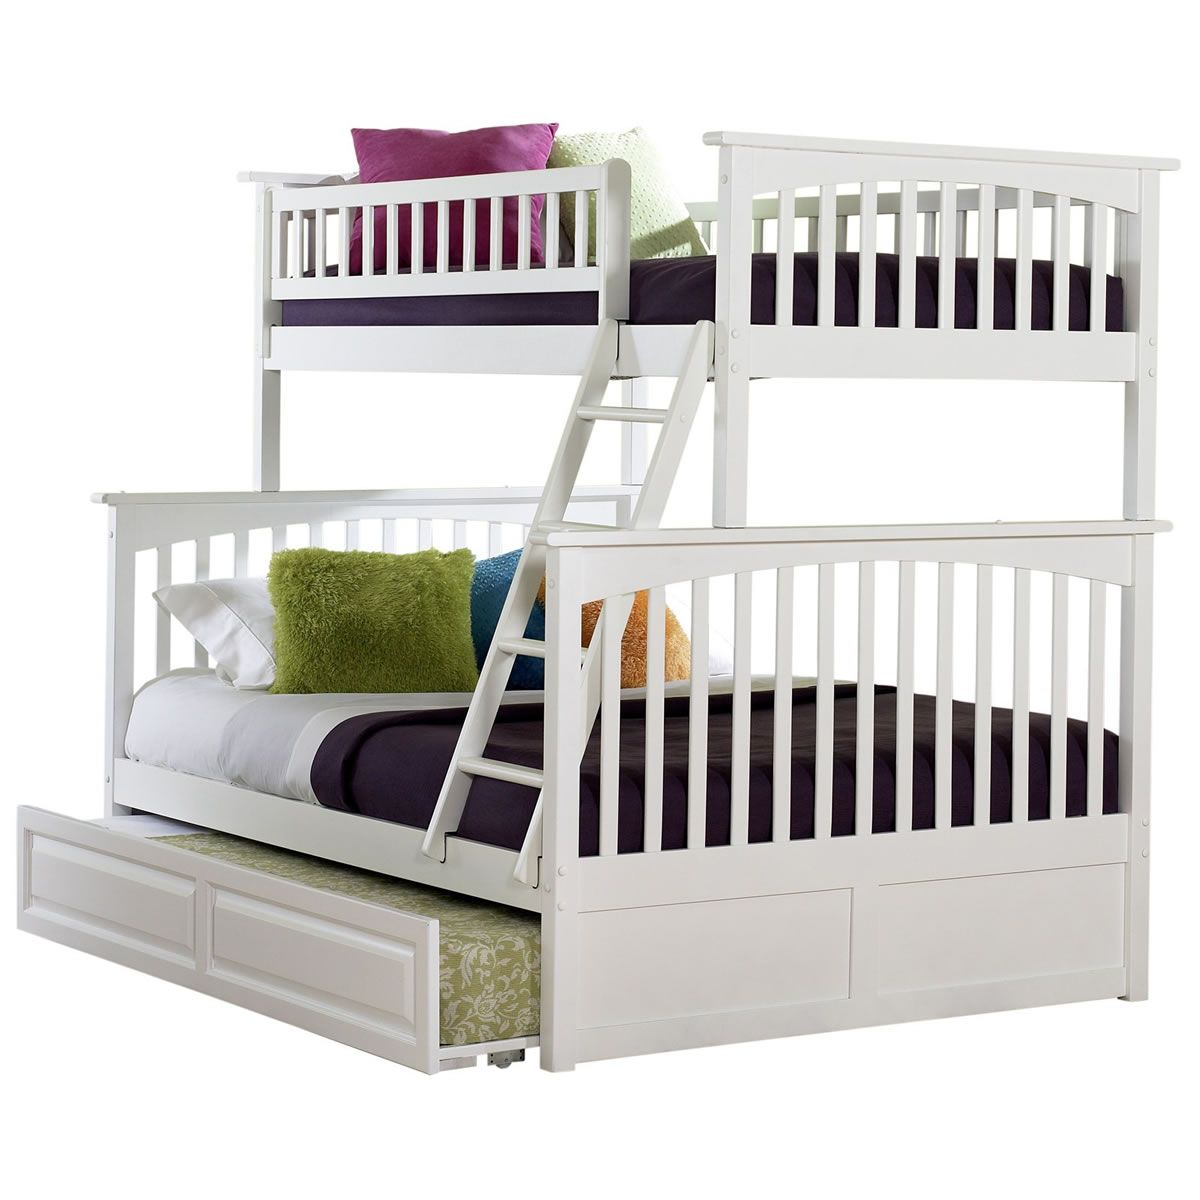 Loft bed with slide screws  Columbia TwinFull in Classic White with trundle option  työpöytä